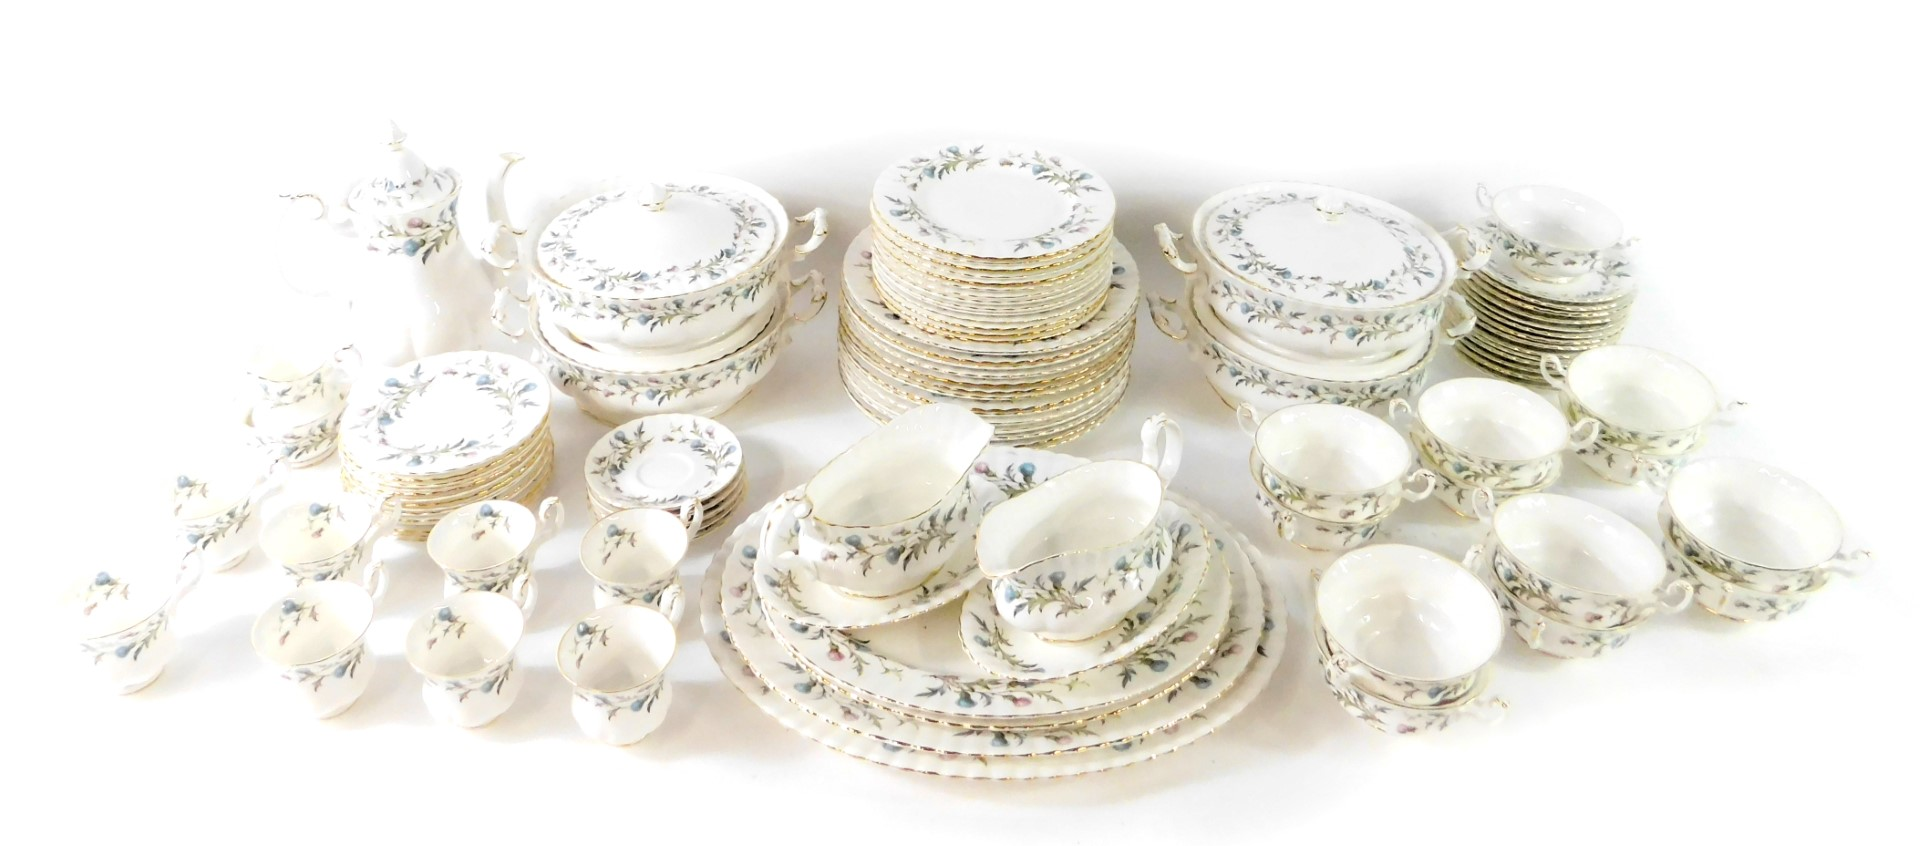 Lot 25 - A Royal Albert porcelain dinner and coffee service decorated in the Brigadoon pattern, comprising